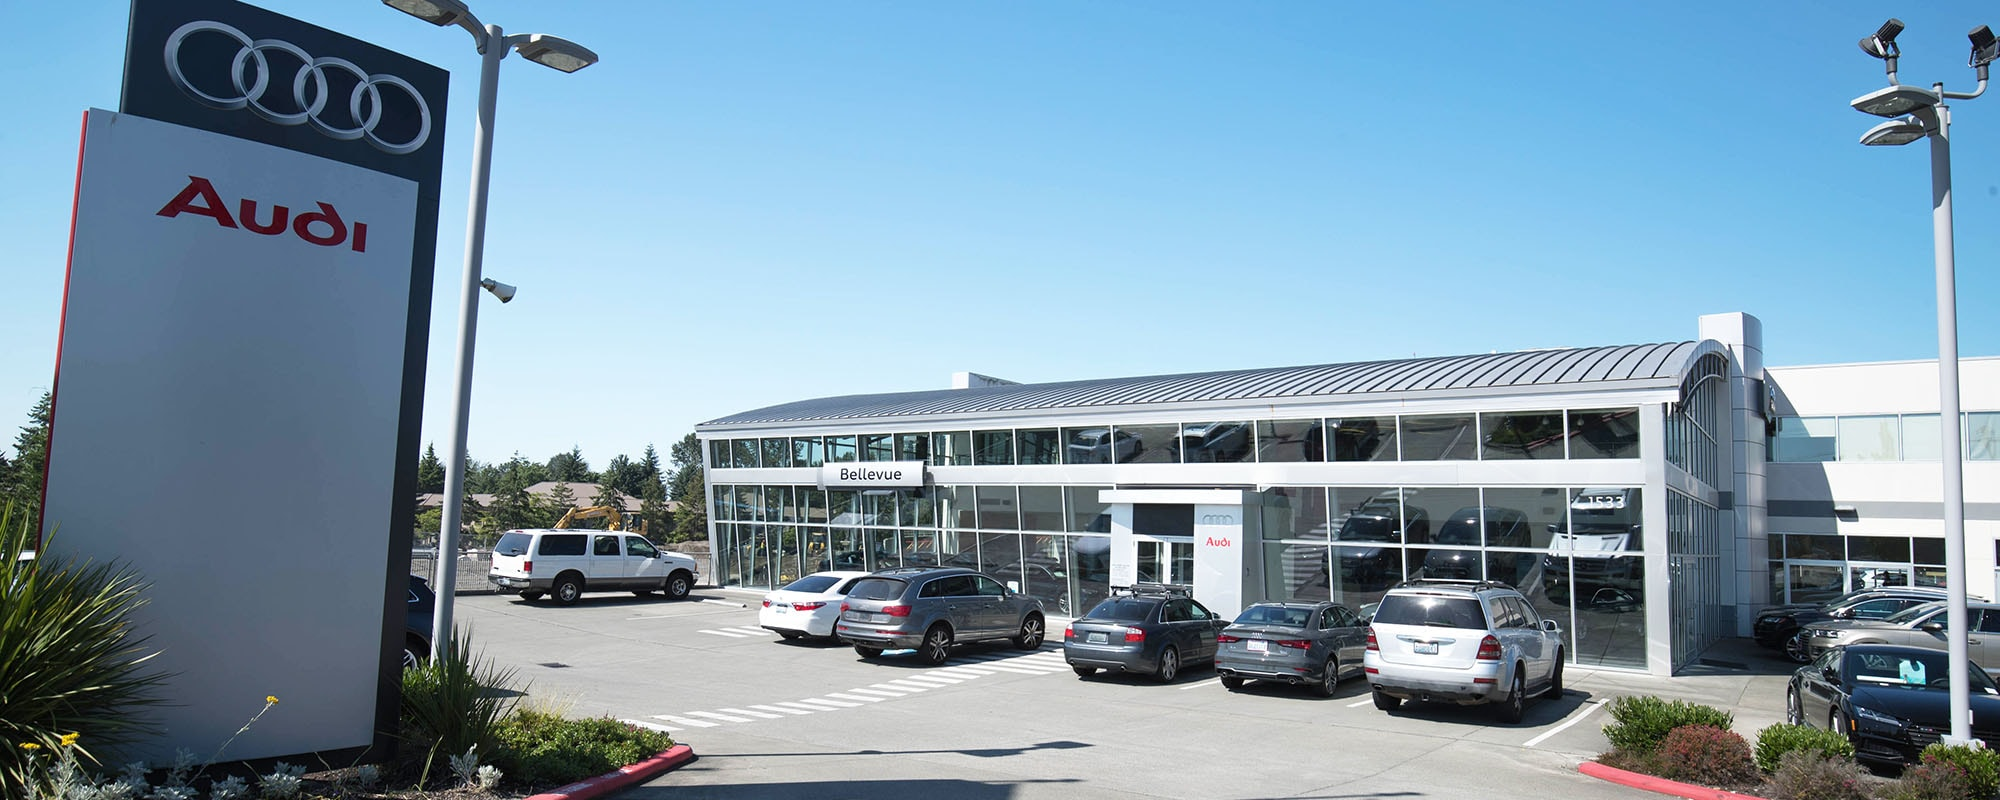 About Audi Bellevue Your Premier Bellevue Audi Dealer - Bellevue audi